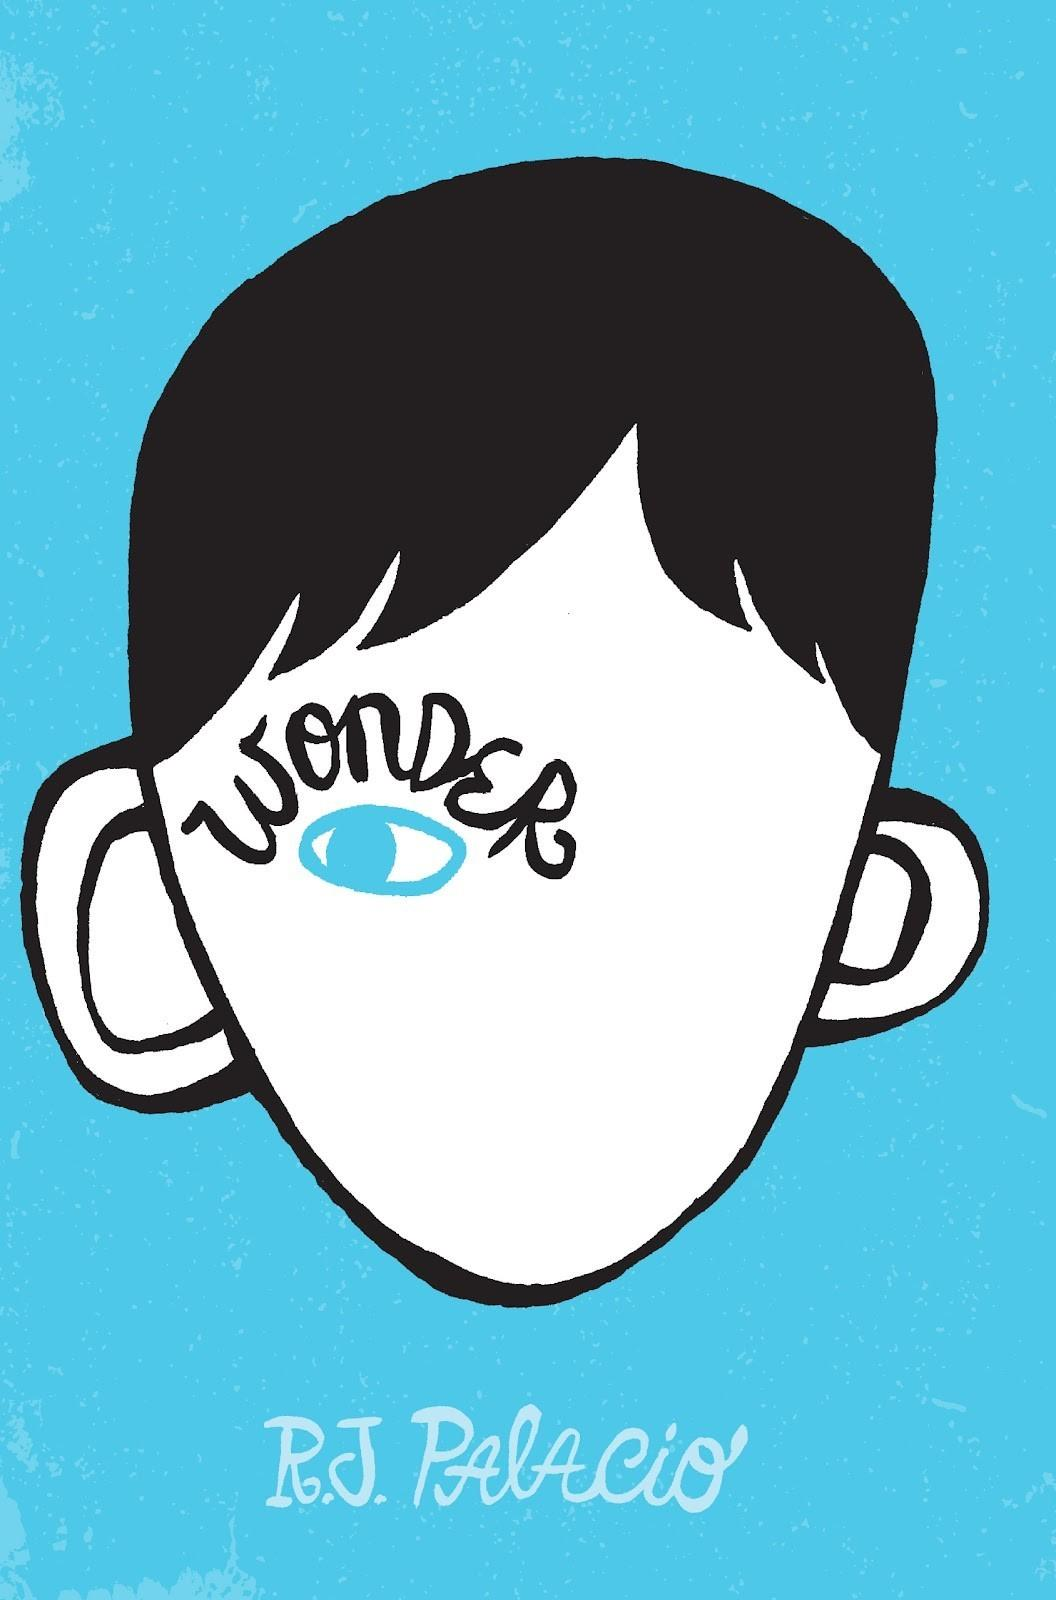 """Wonder"" by R.J. Palacio is one of a growing number of successful middle-grade books."